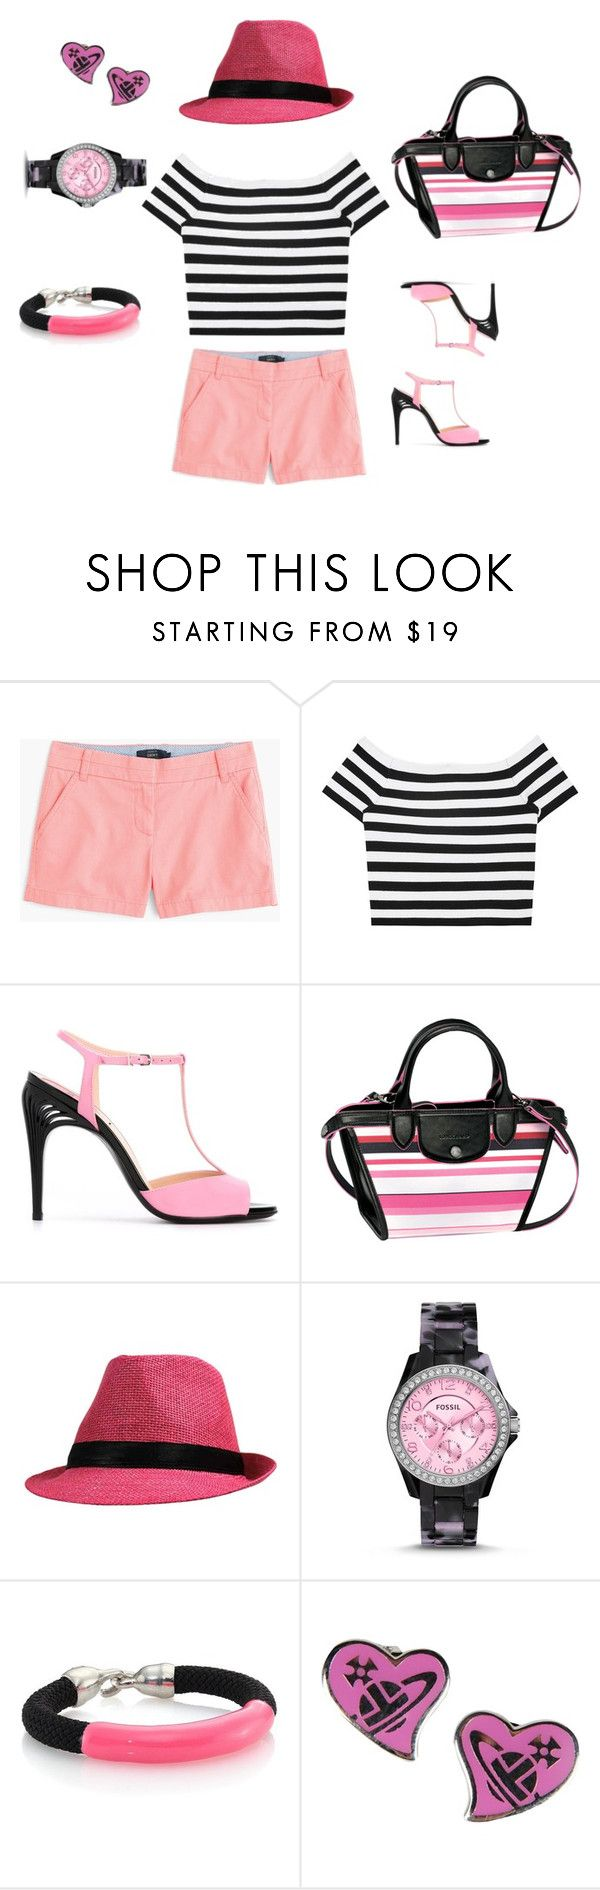 """""""Bez tytułu #119"""" by joannakulis ❤ liked on Polyvore featuring J.Crew, Alice + Olivia, Fendi, Longchamp, FOSSIL, Orly Genger and Vivienne Westwood"""